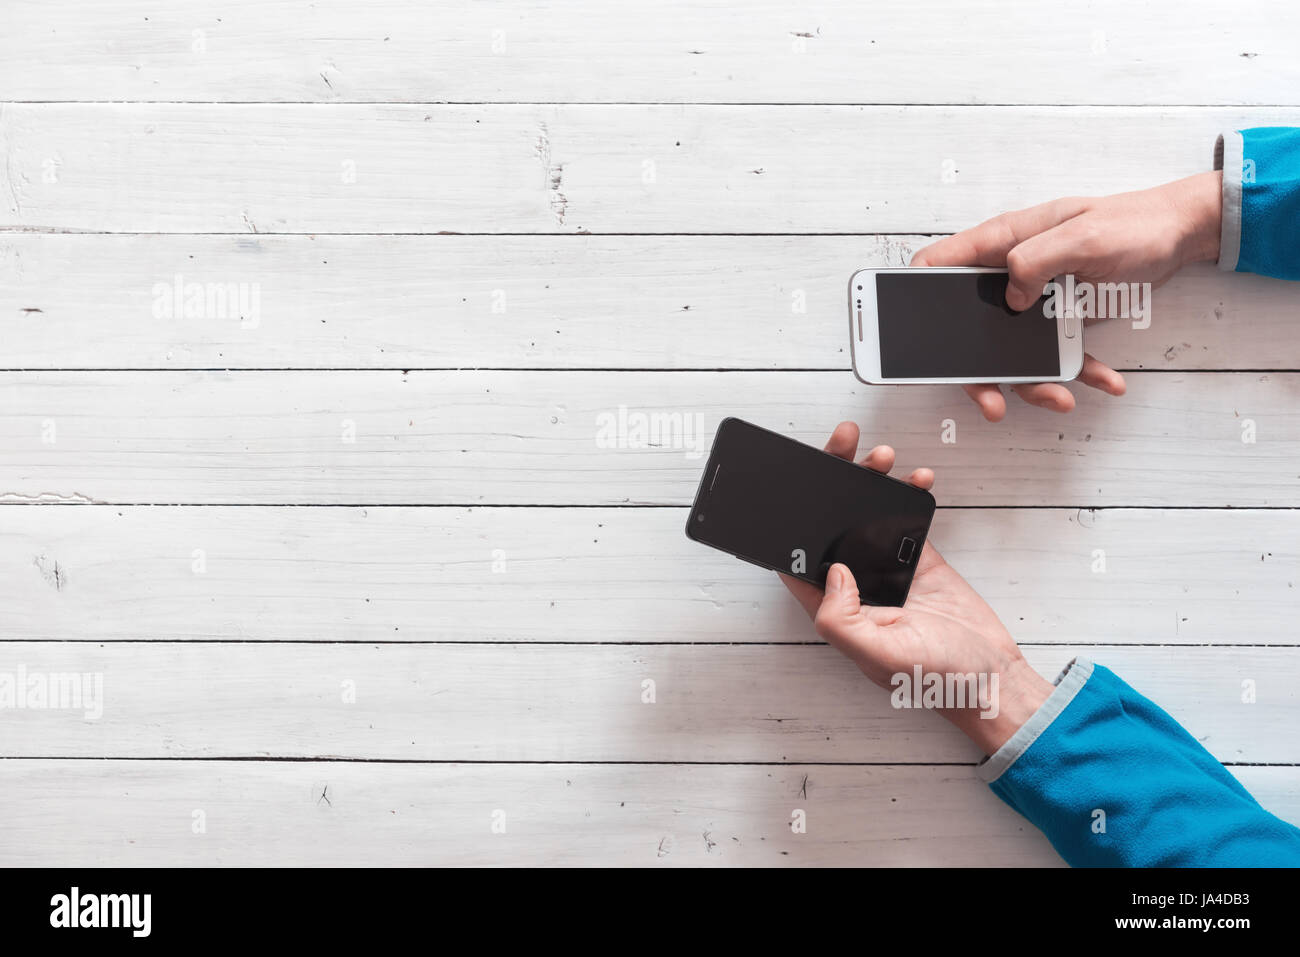 Mobile phones in hands closeup. Network addicted concept - Stock Image